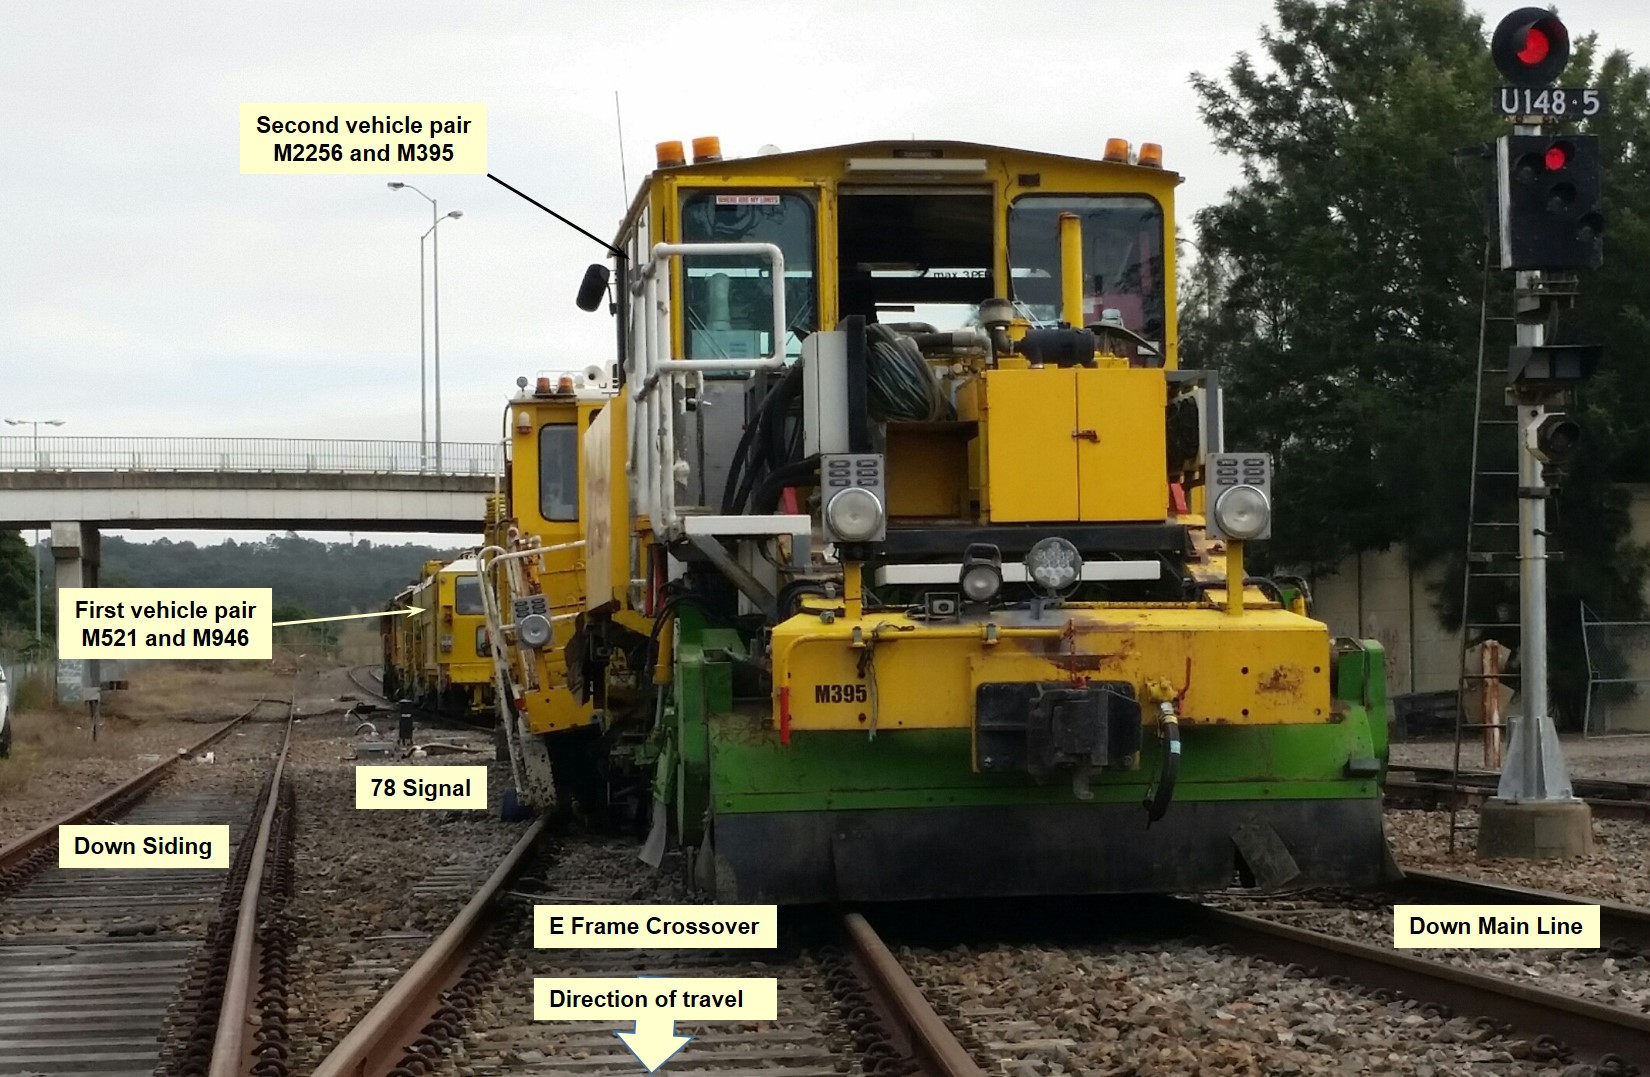 Figure 4: Derailed track vehicles M2256 and M395